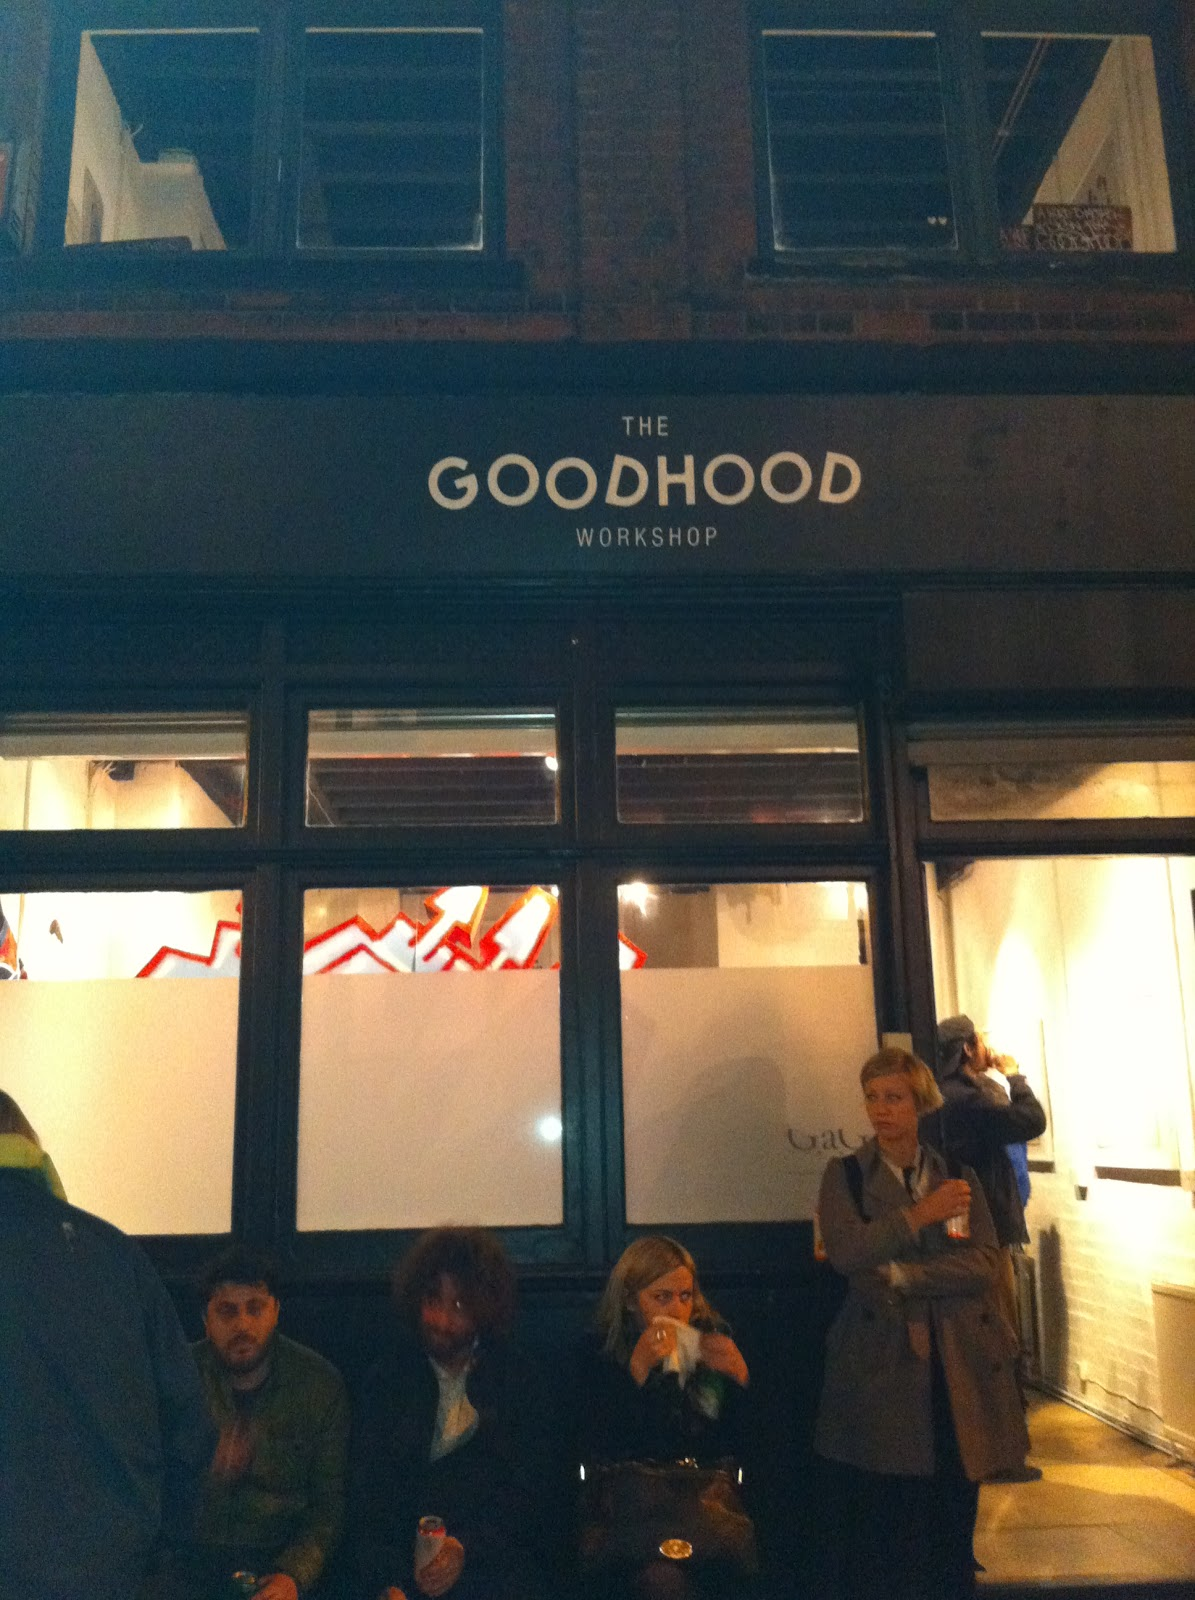 Ralph Lauren Polo Exhibition at The Goodhood Workshop